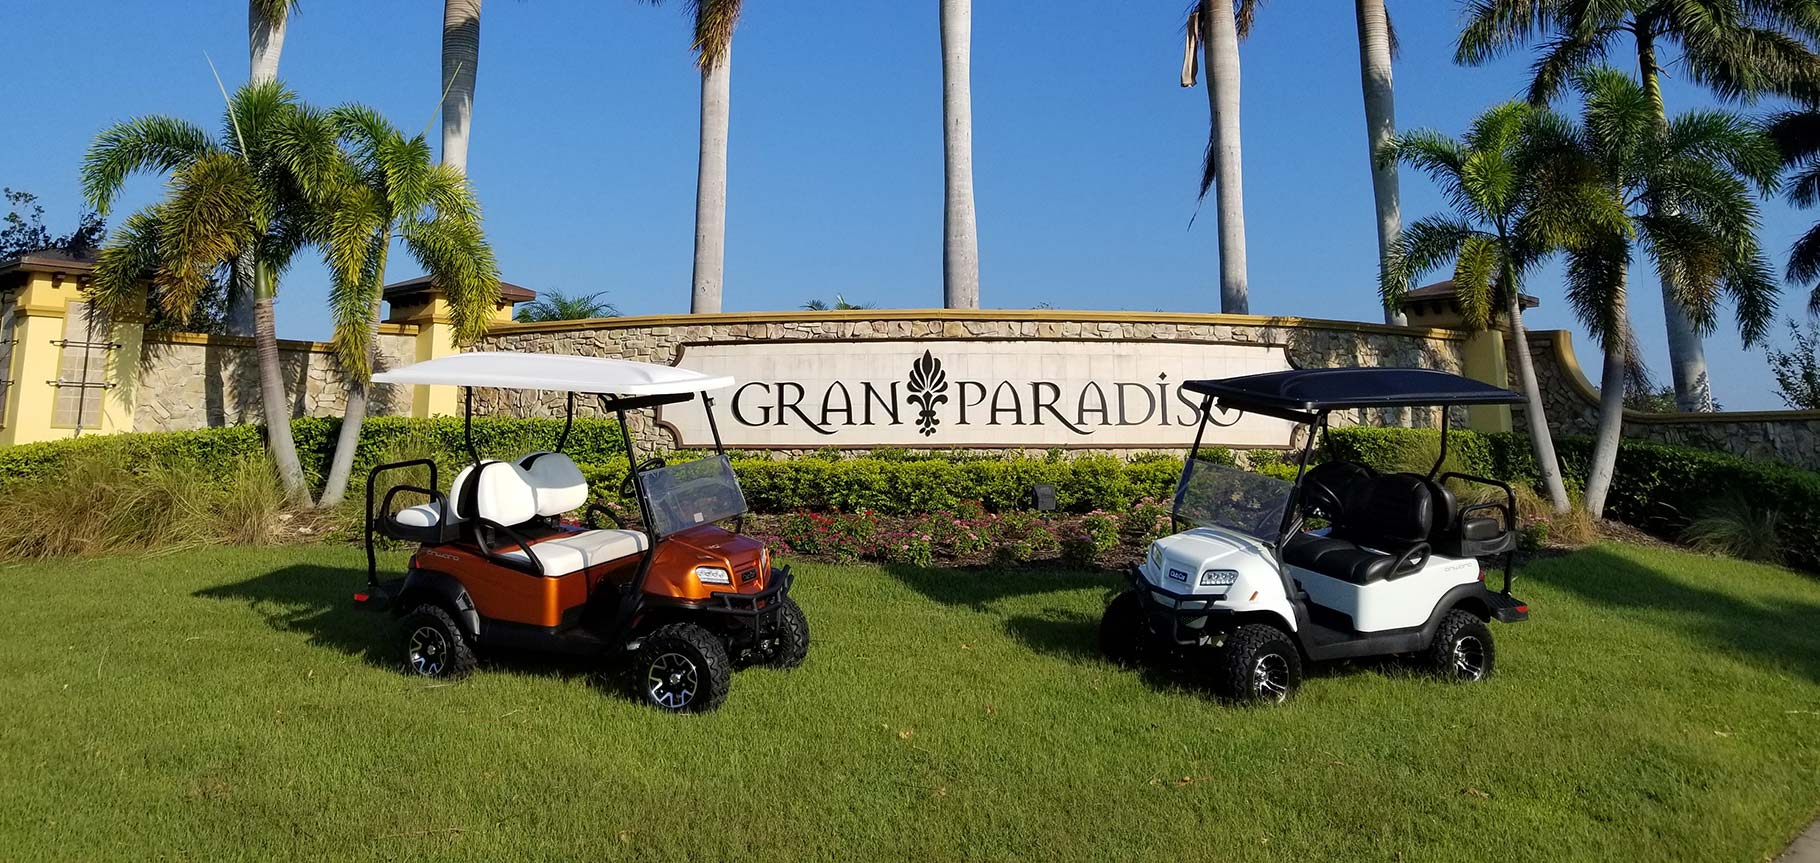 Gran Paradise entrance sign with golf carts image